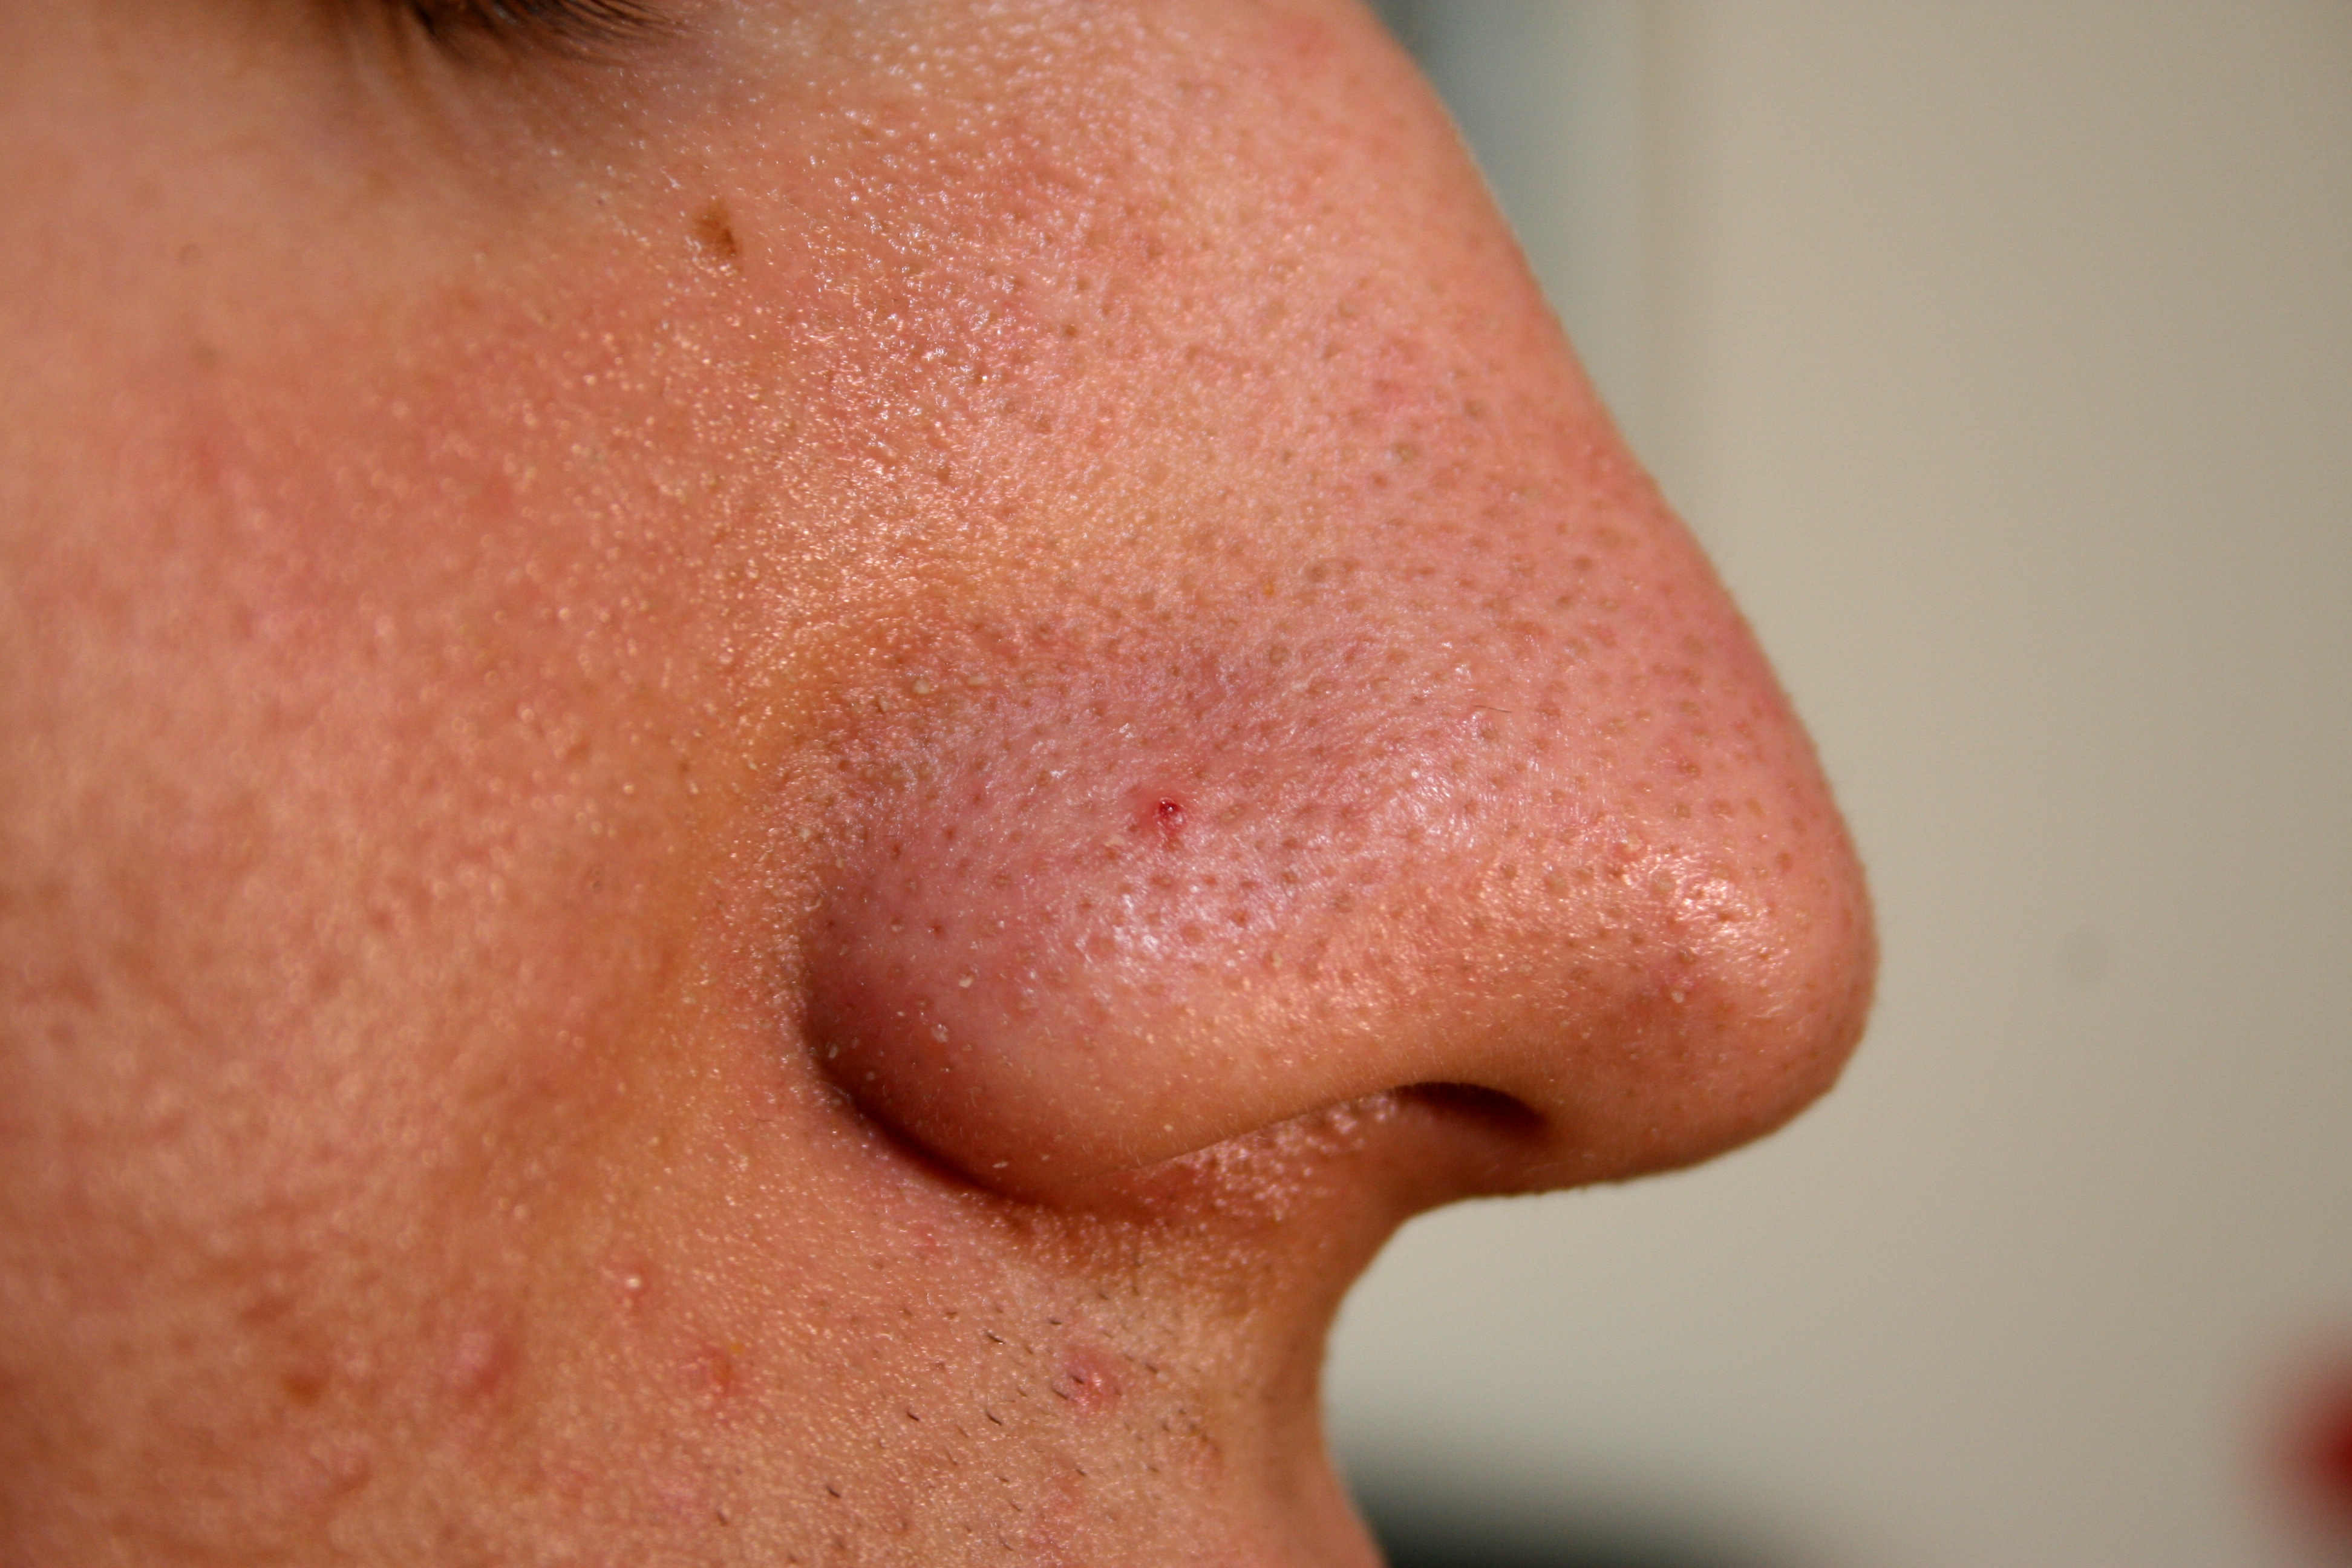 large pores on nose - photo #46